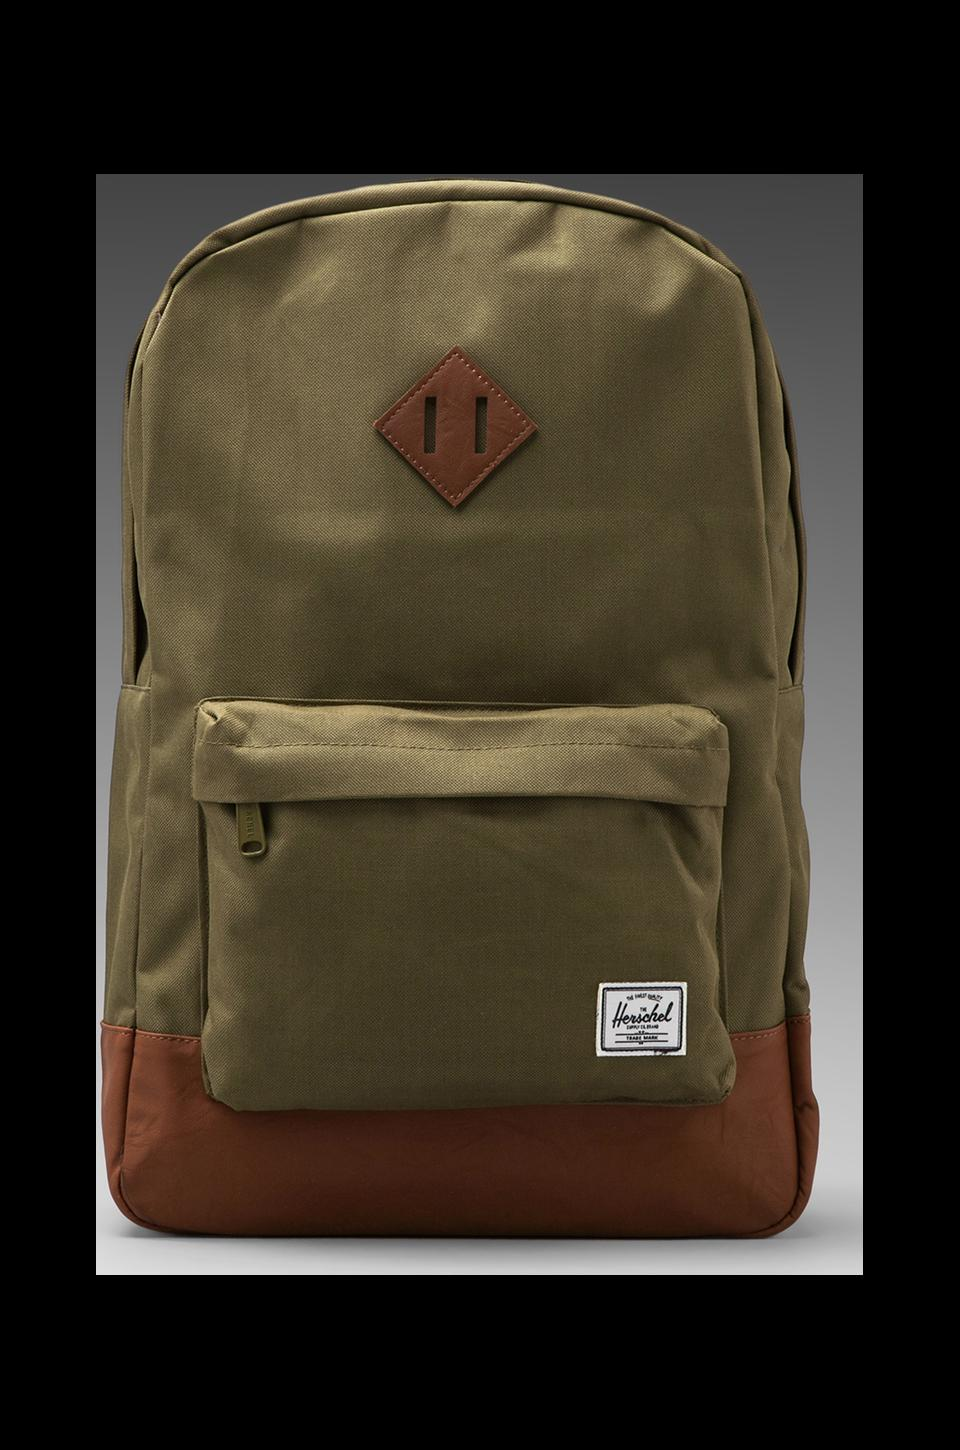 Herschel Supply Co. Heritage Backpack in Army